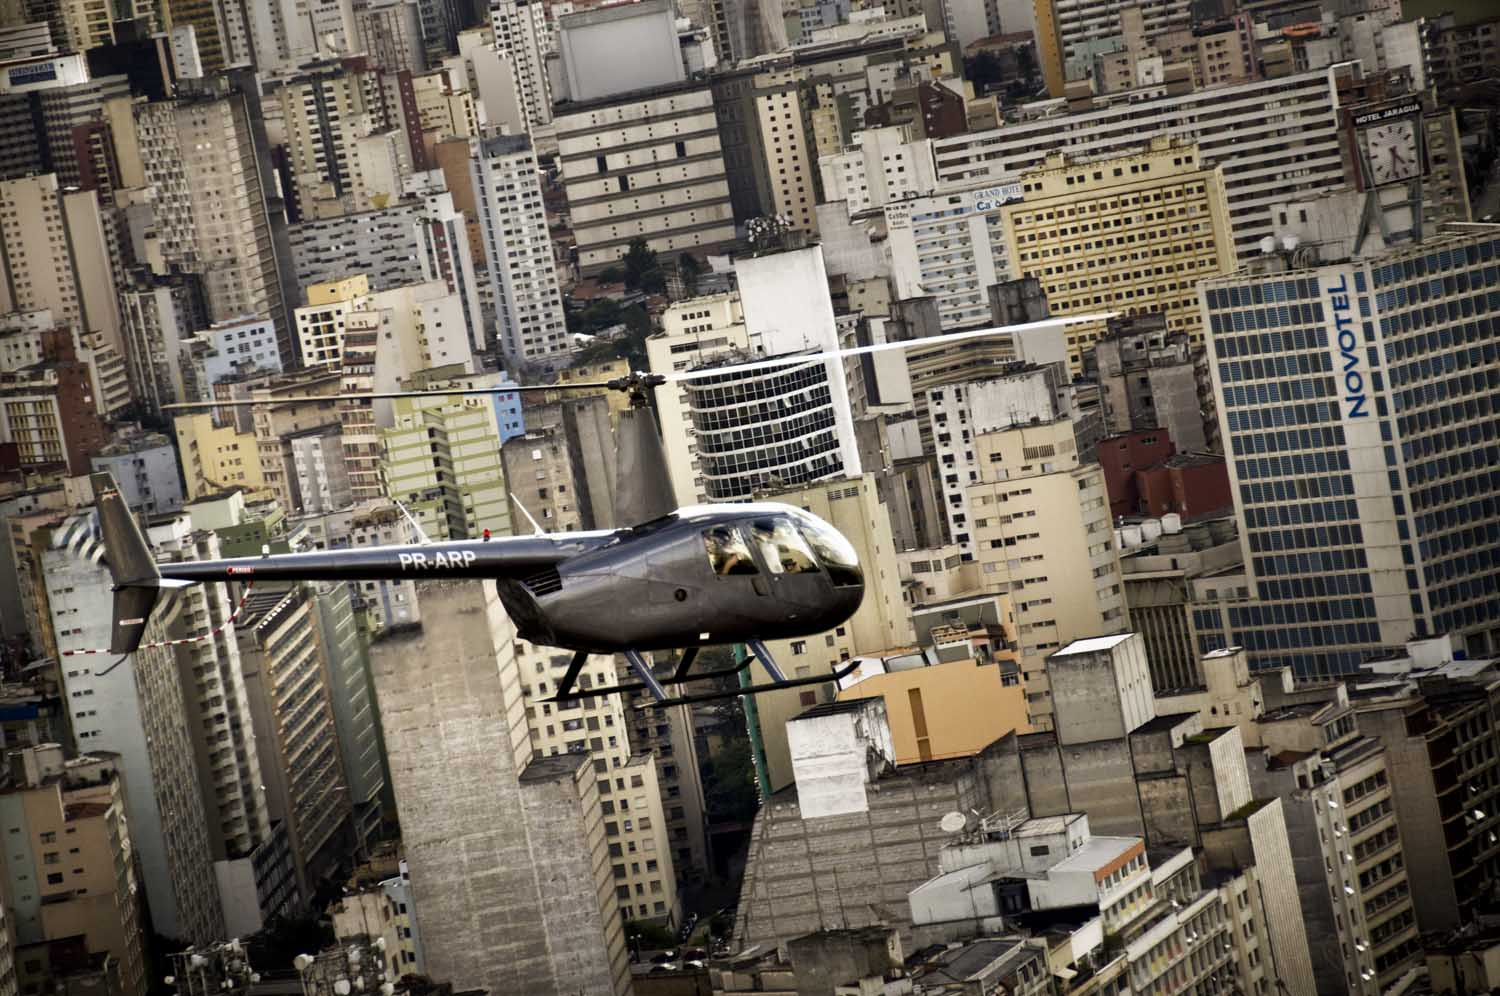 Helicopter overflies downtown Sao Paulo - Sao Paulo has the second worlds helicopters fleet.